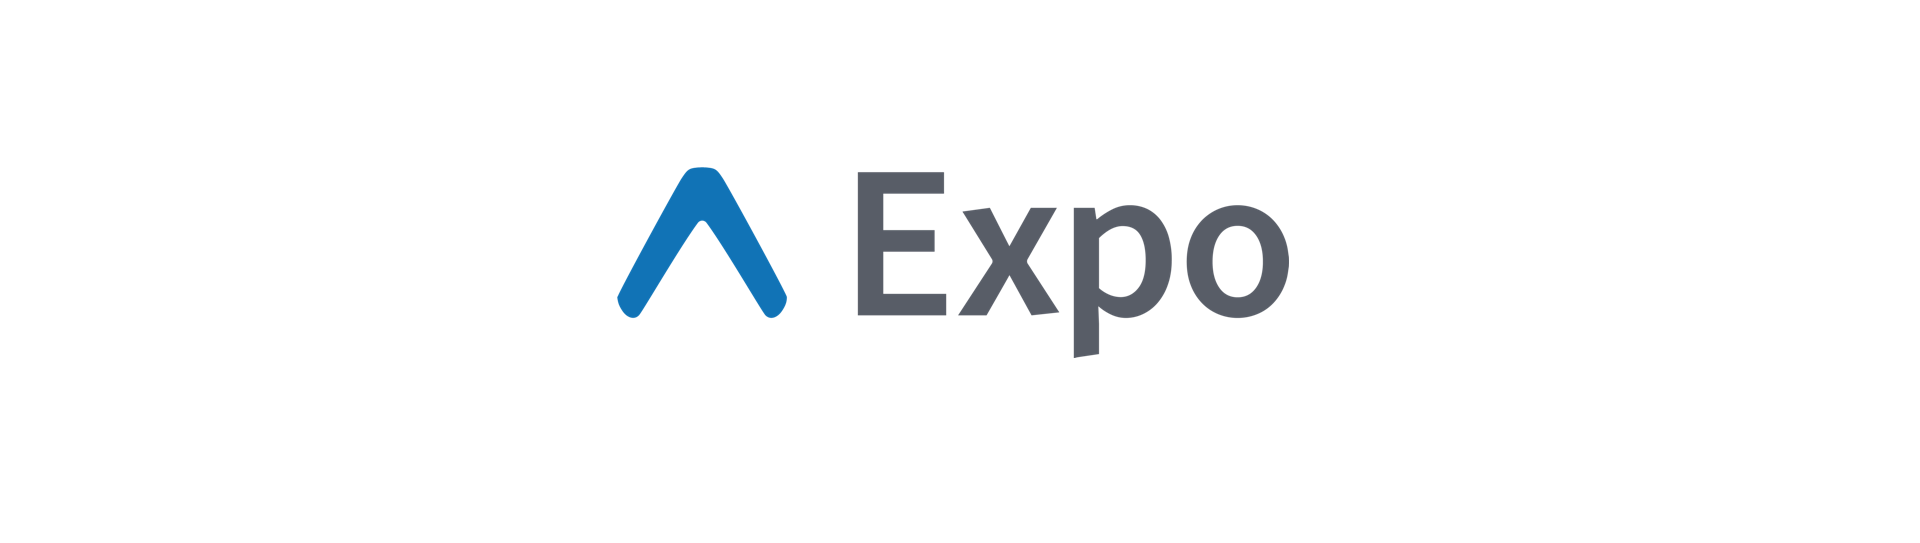 Expoロゴ